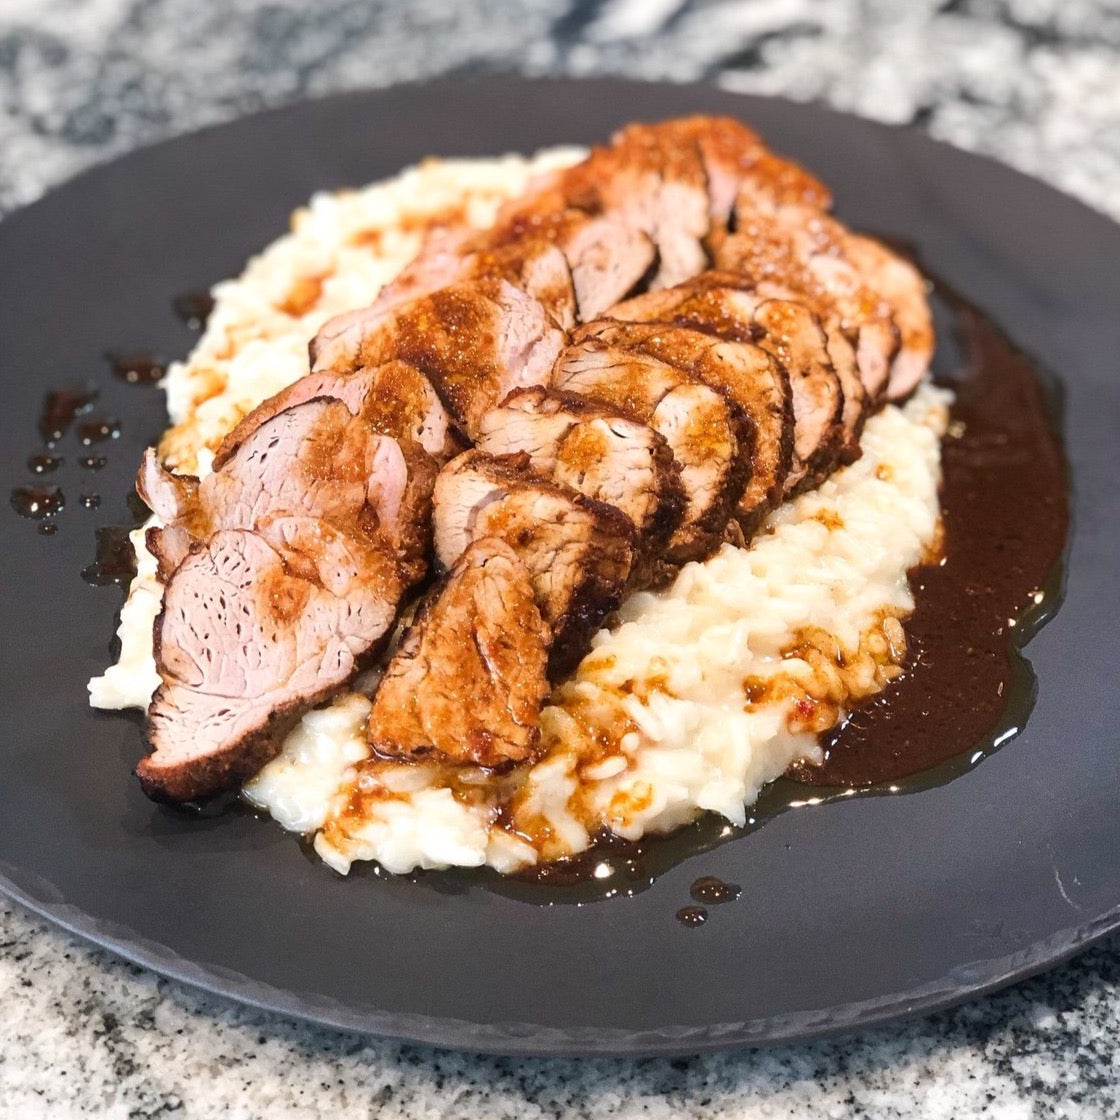 cooked Korean bbq pork tenderloin over risotto